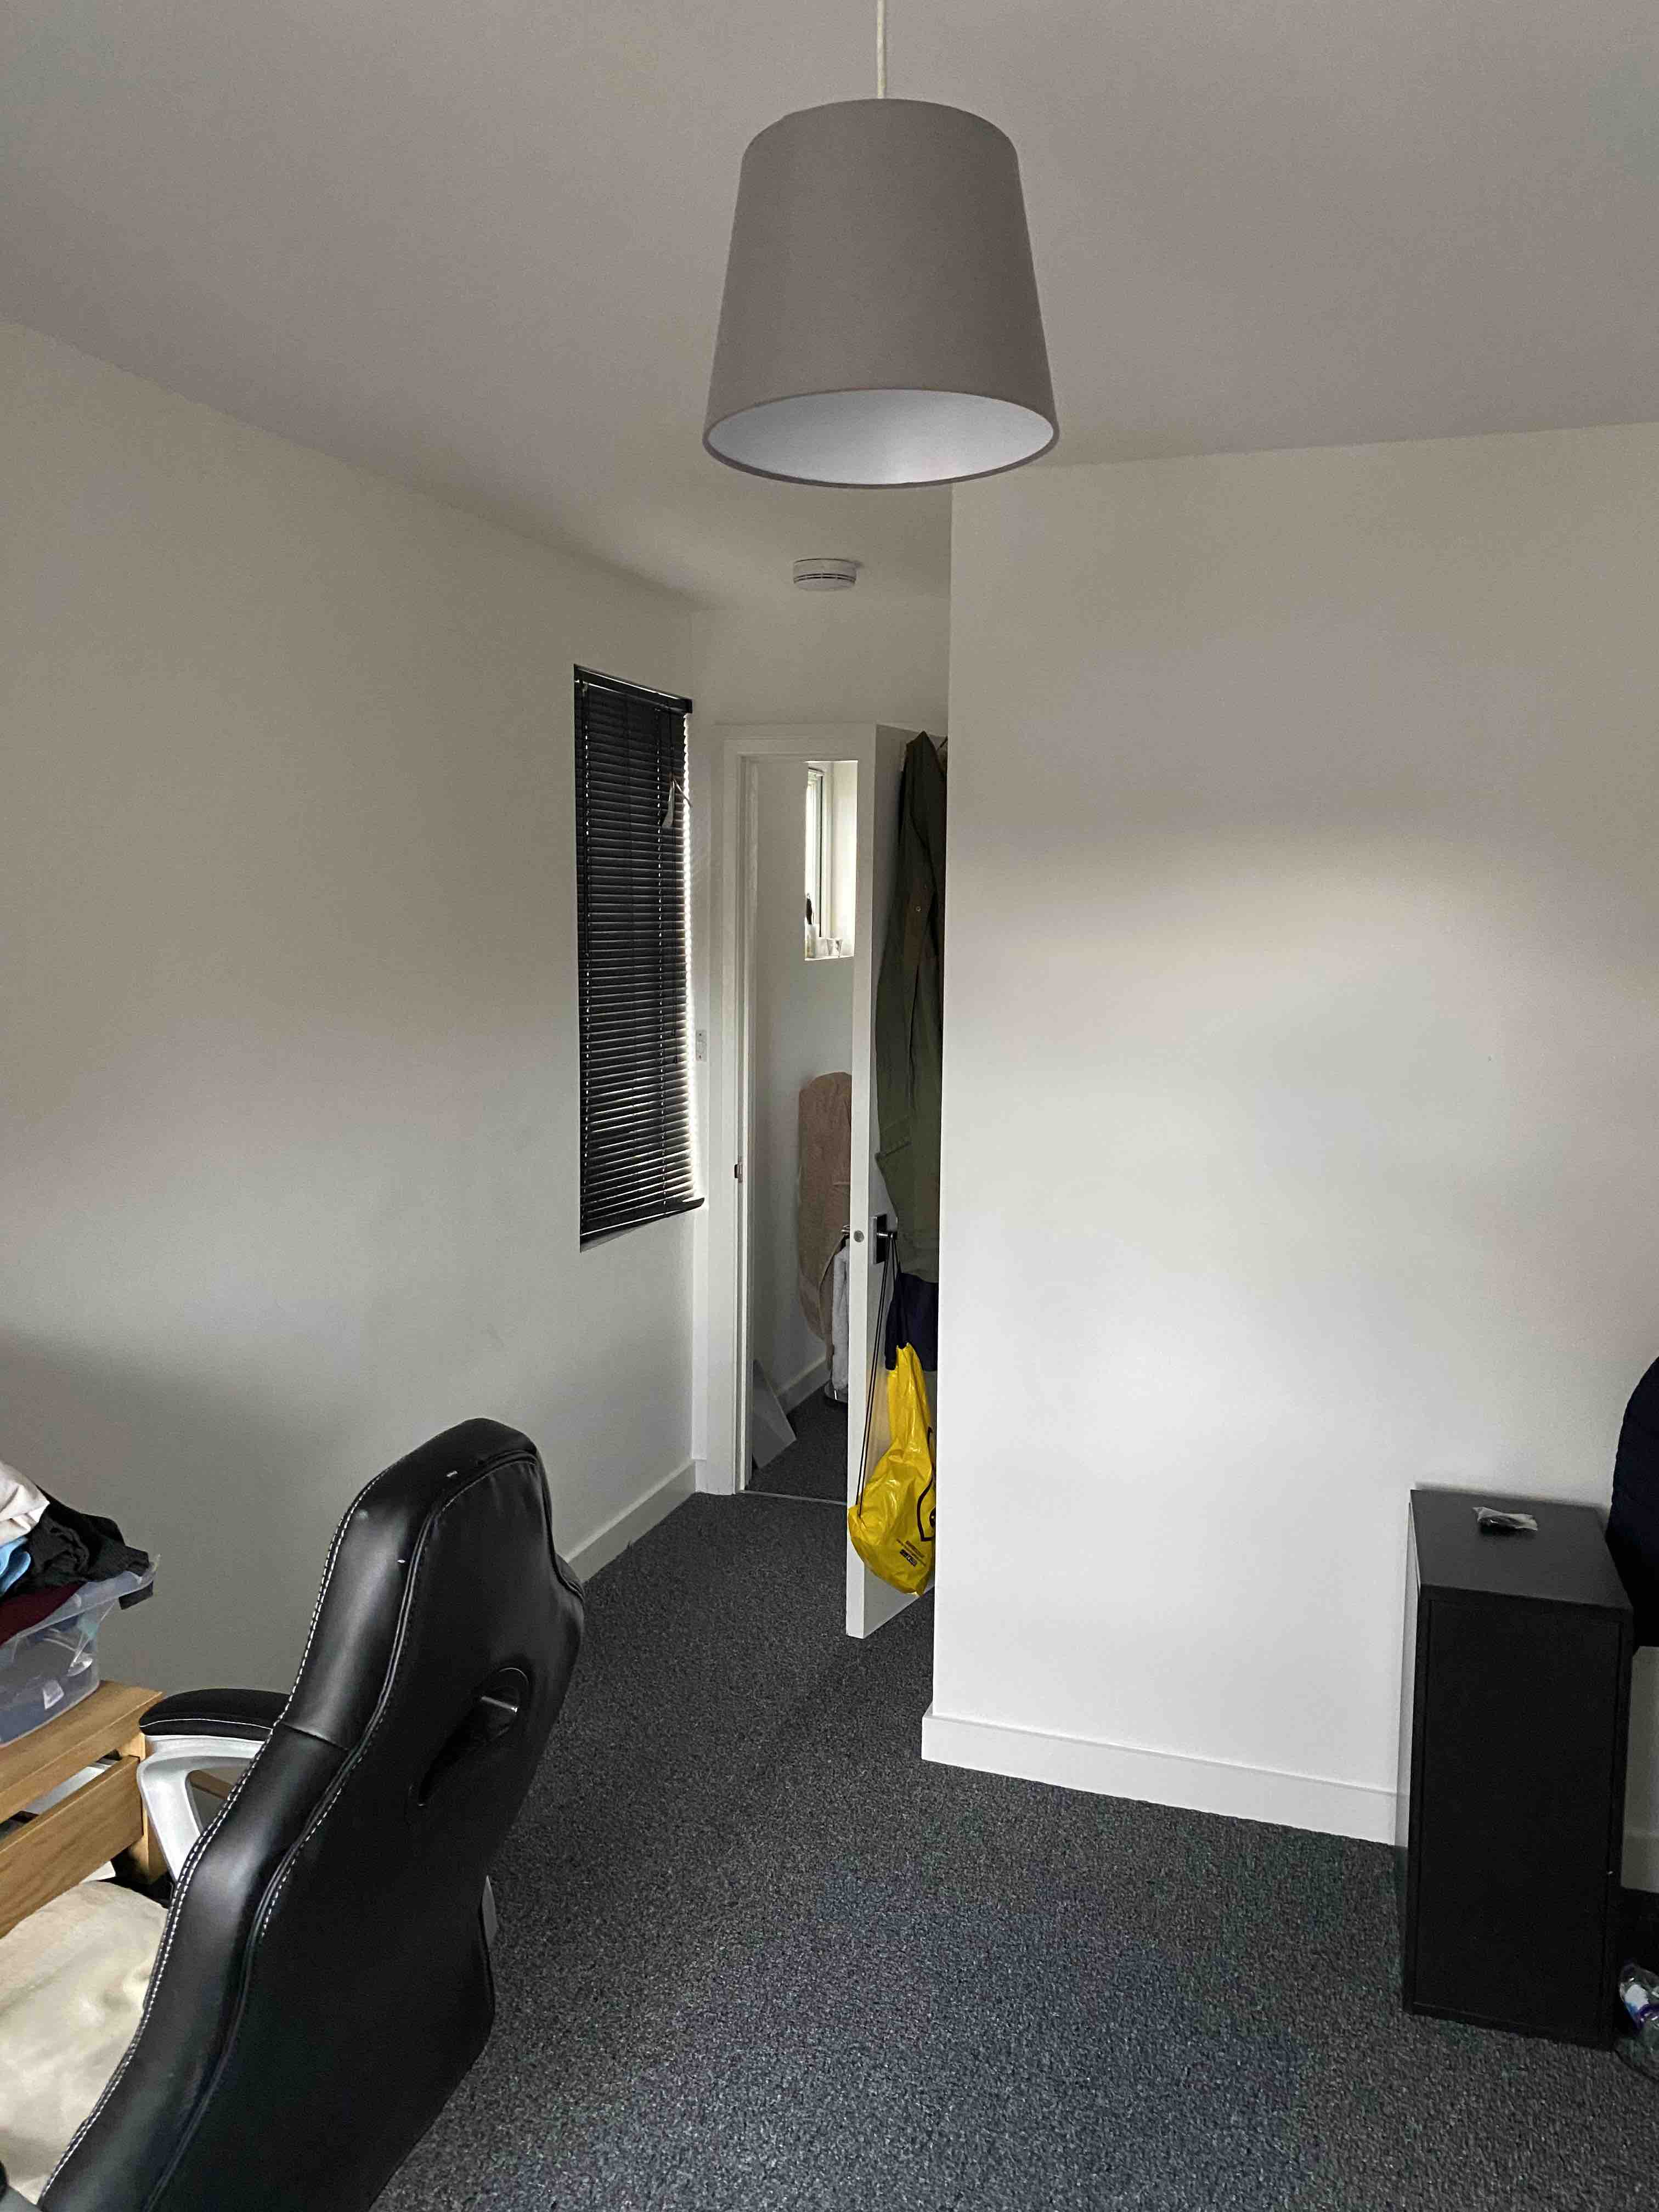 1 room in Walpole, London, W13 9EL RoomsLocal image